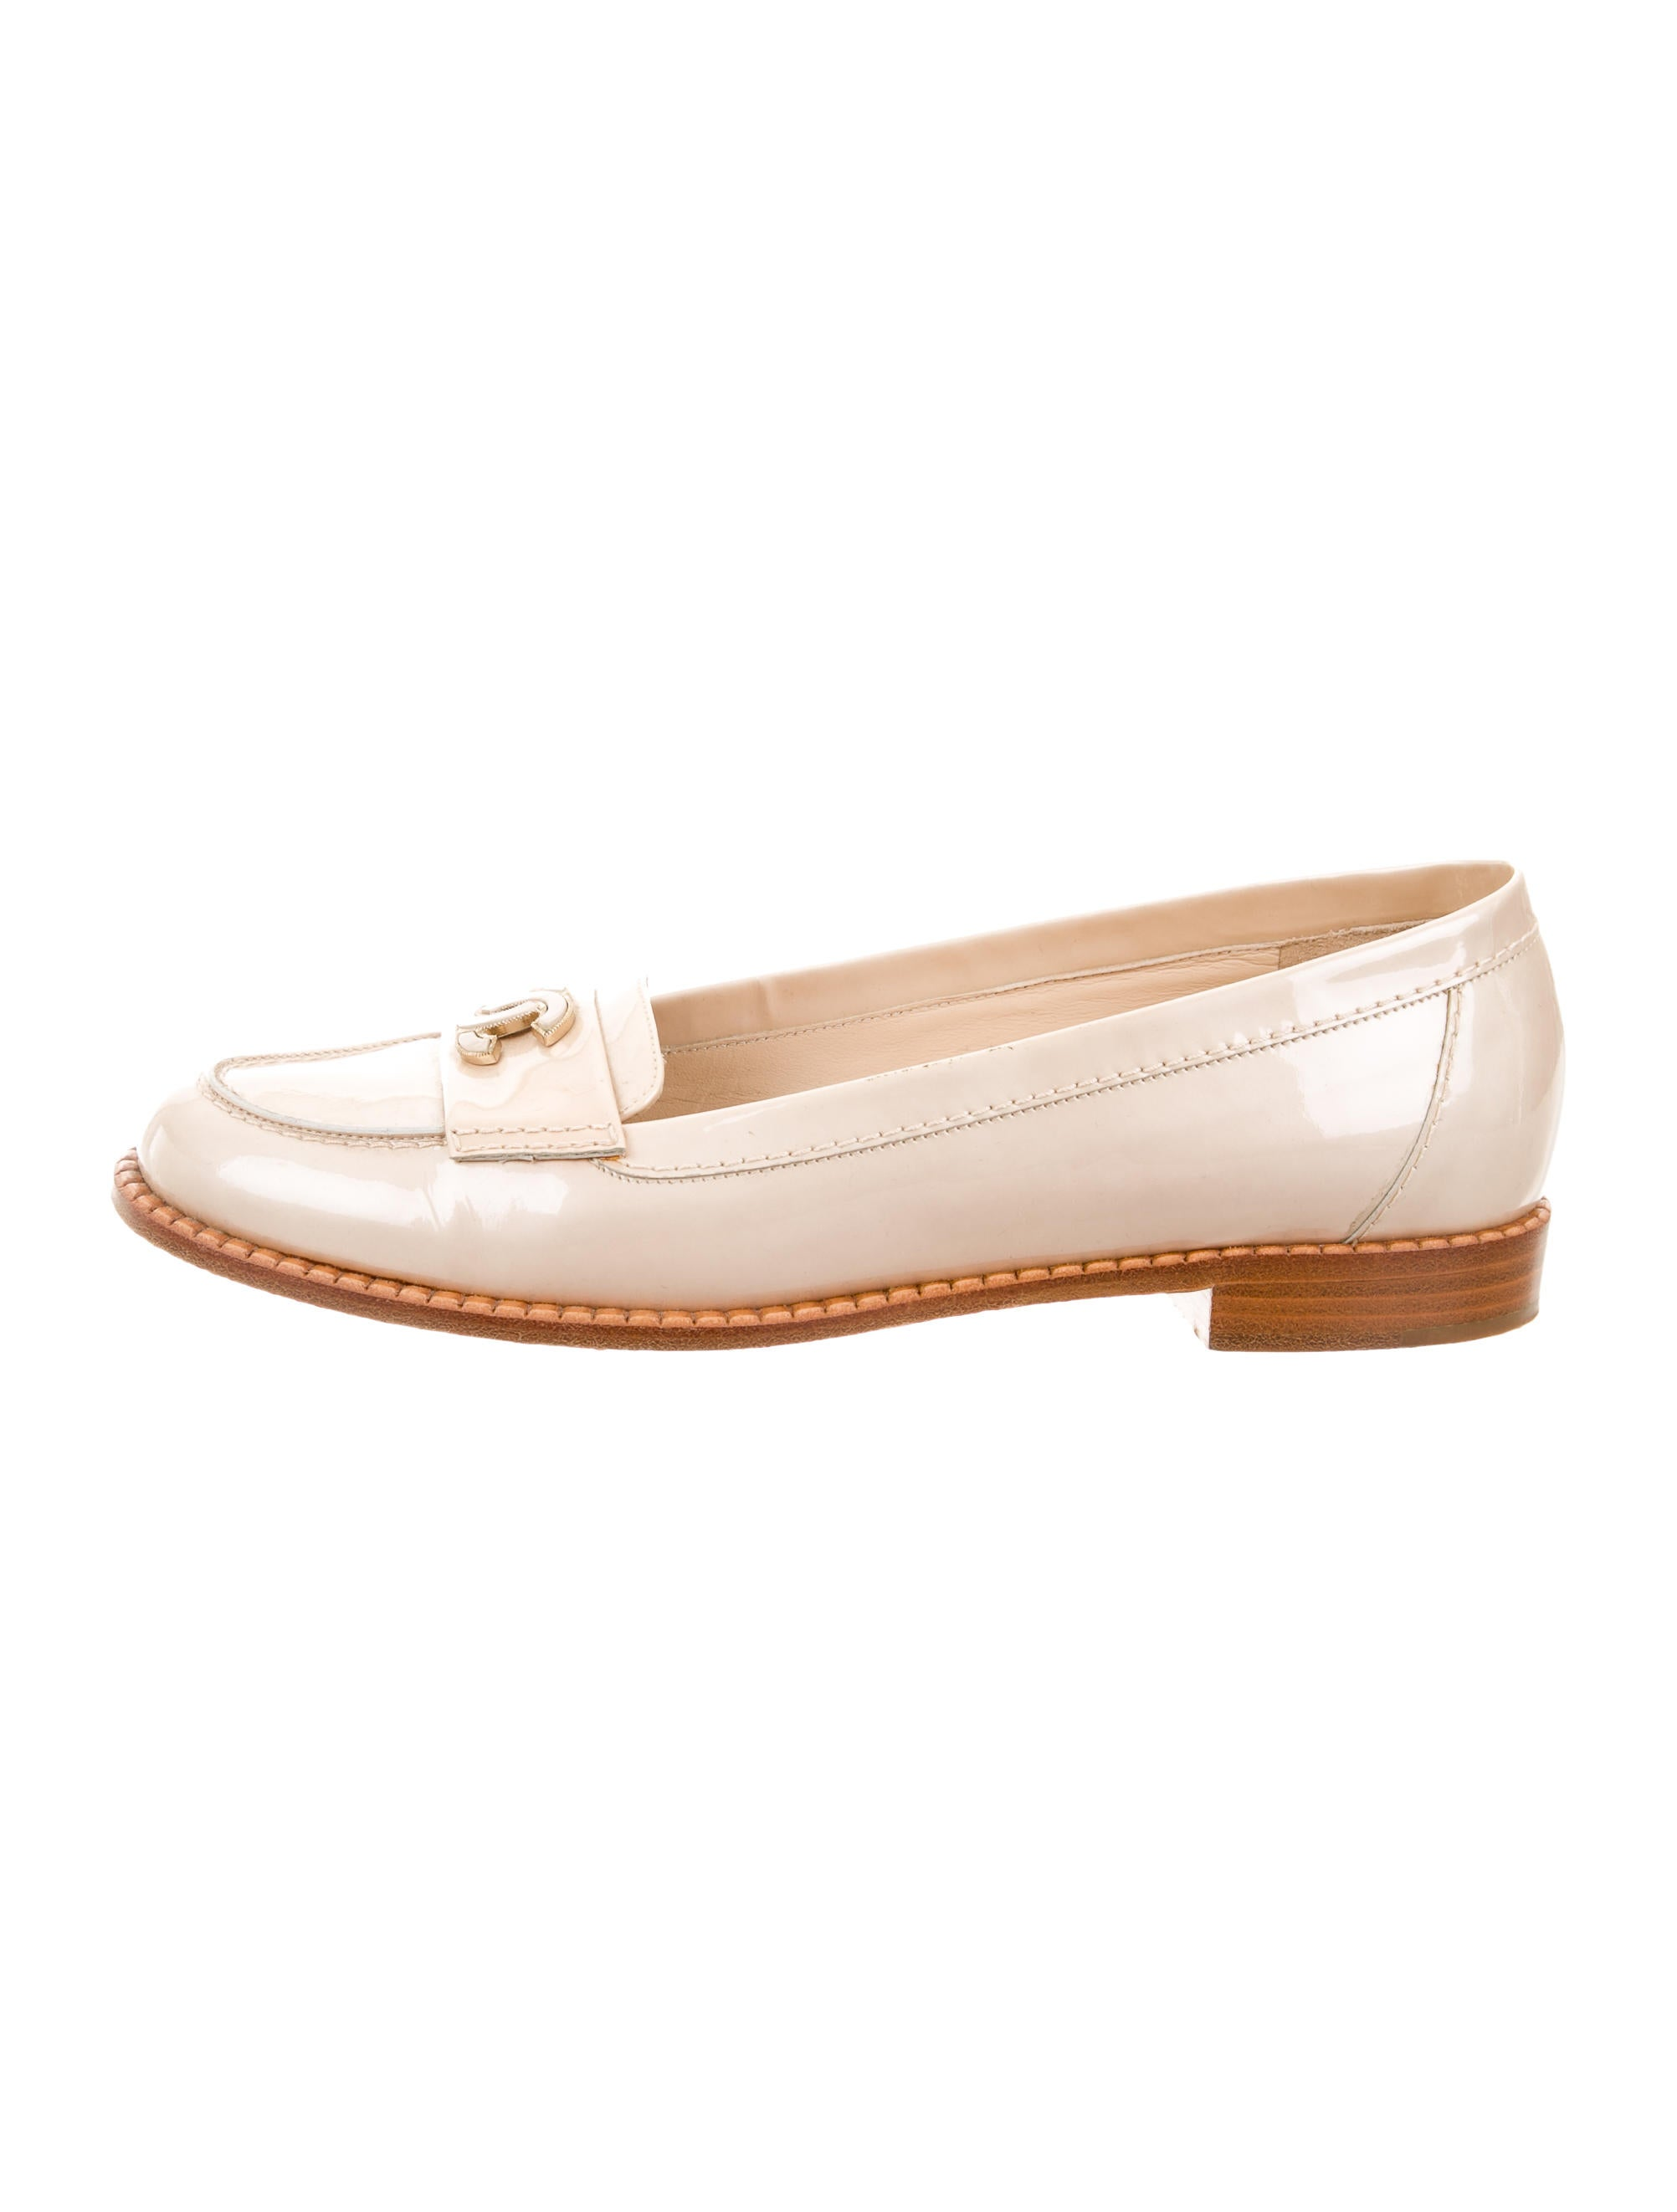 Chanel Patent Leather CC Loafers - Shoes - CHA155853 | The RealReal